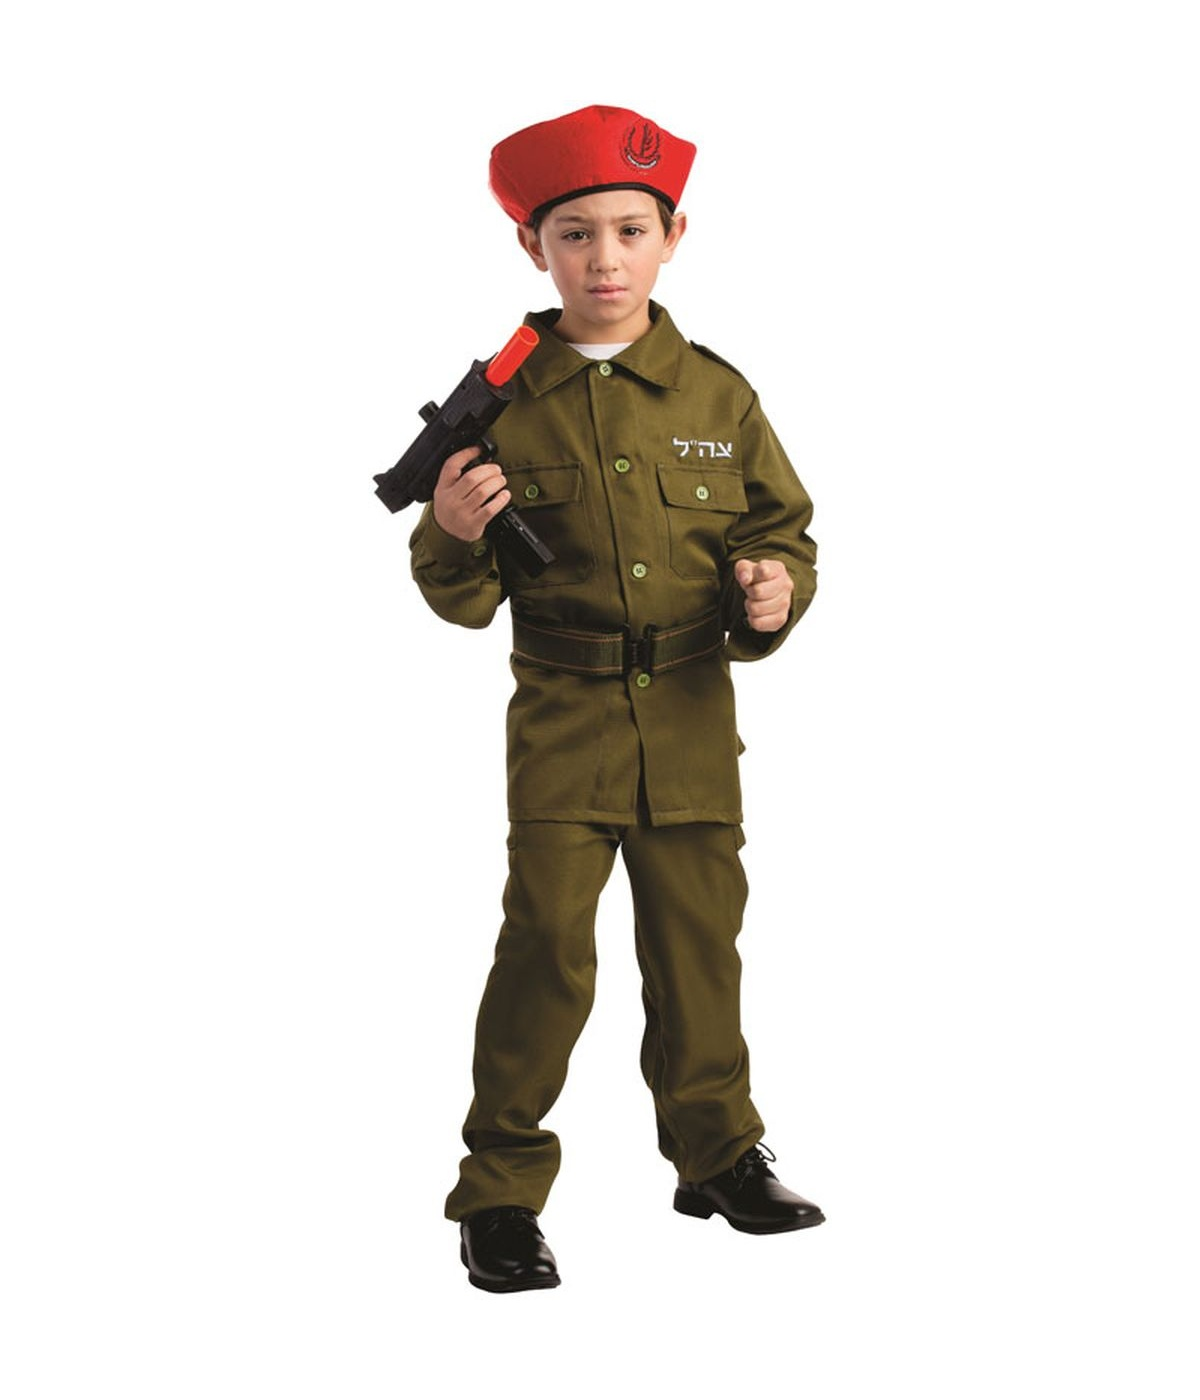 Israeli Soldier Boys Costume